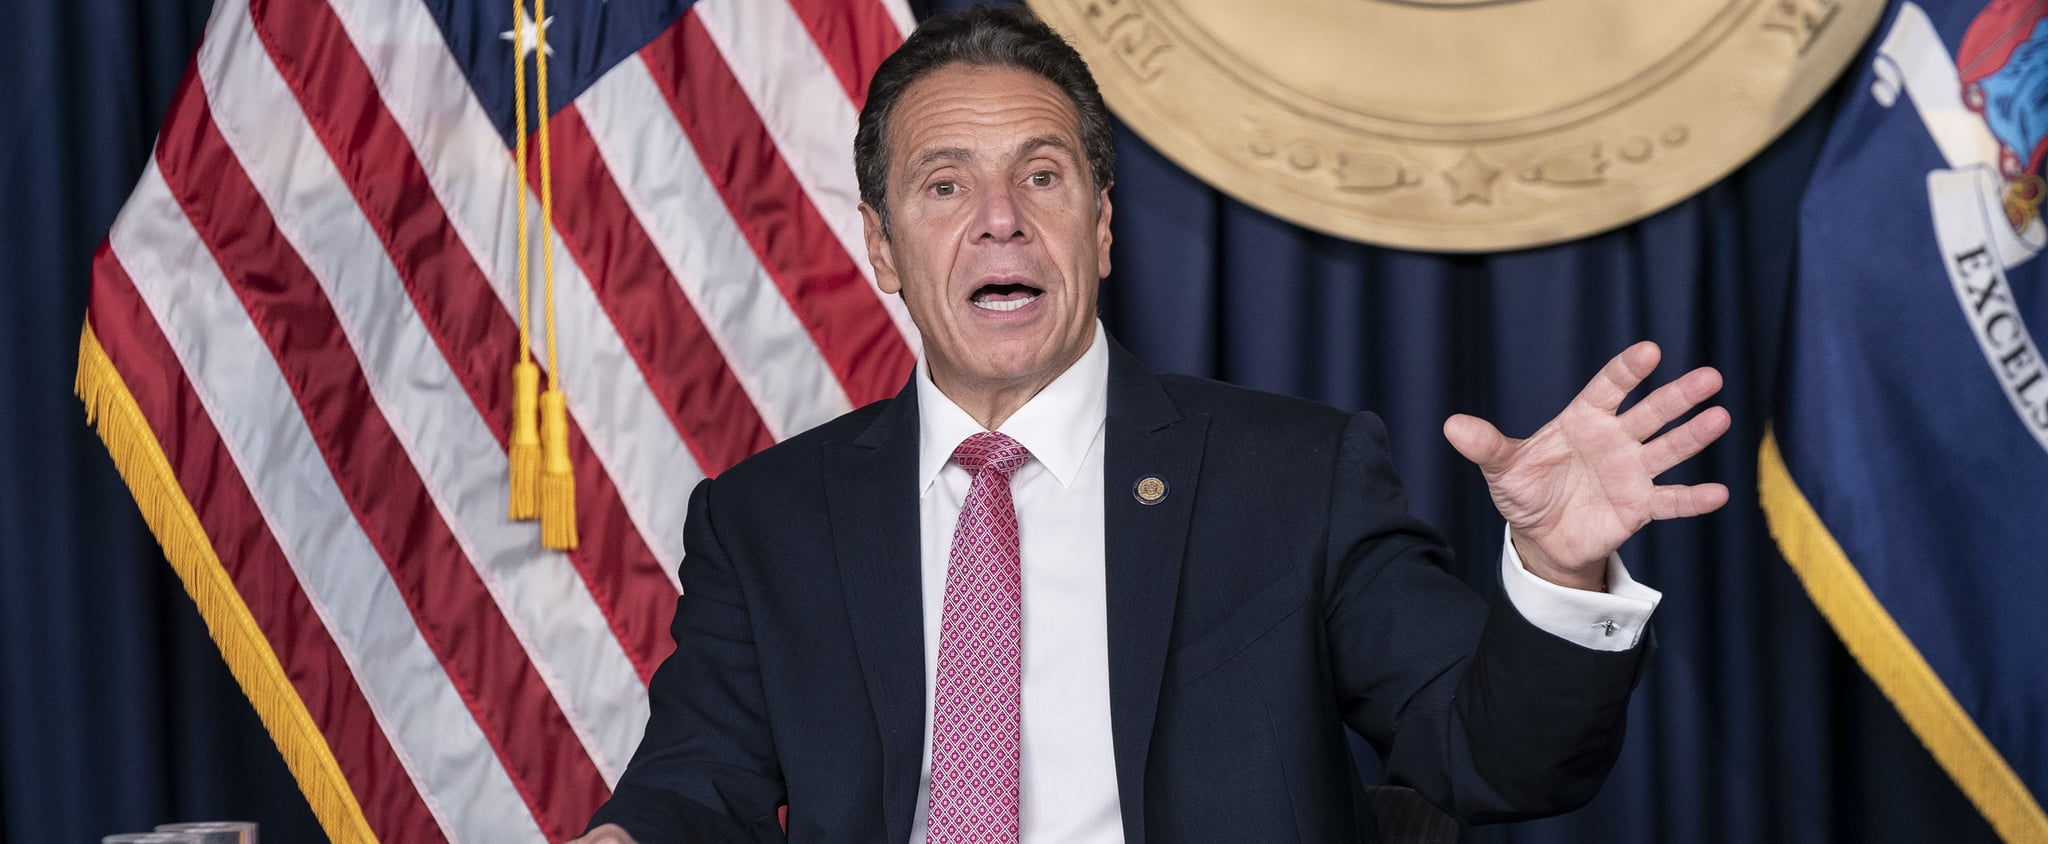 Governor Cuomo Responds to Sexual-Harassment Allegations